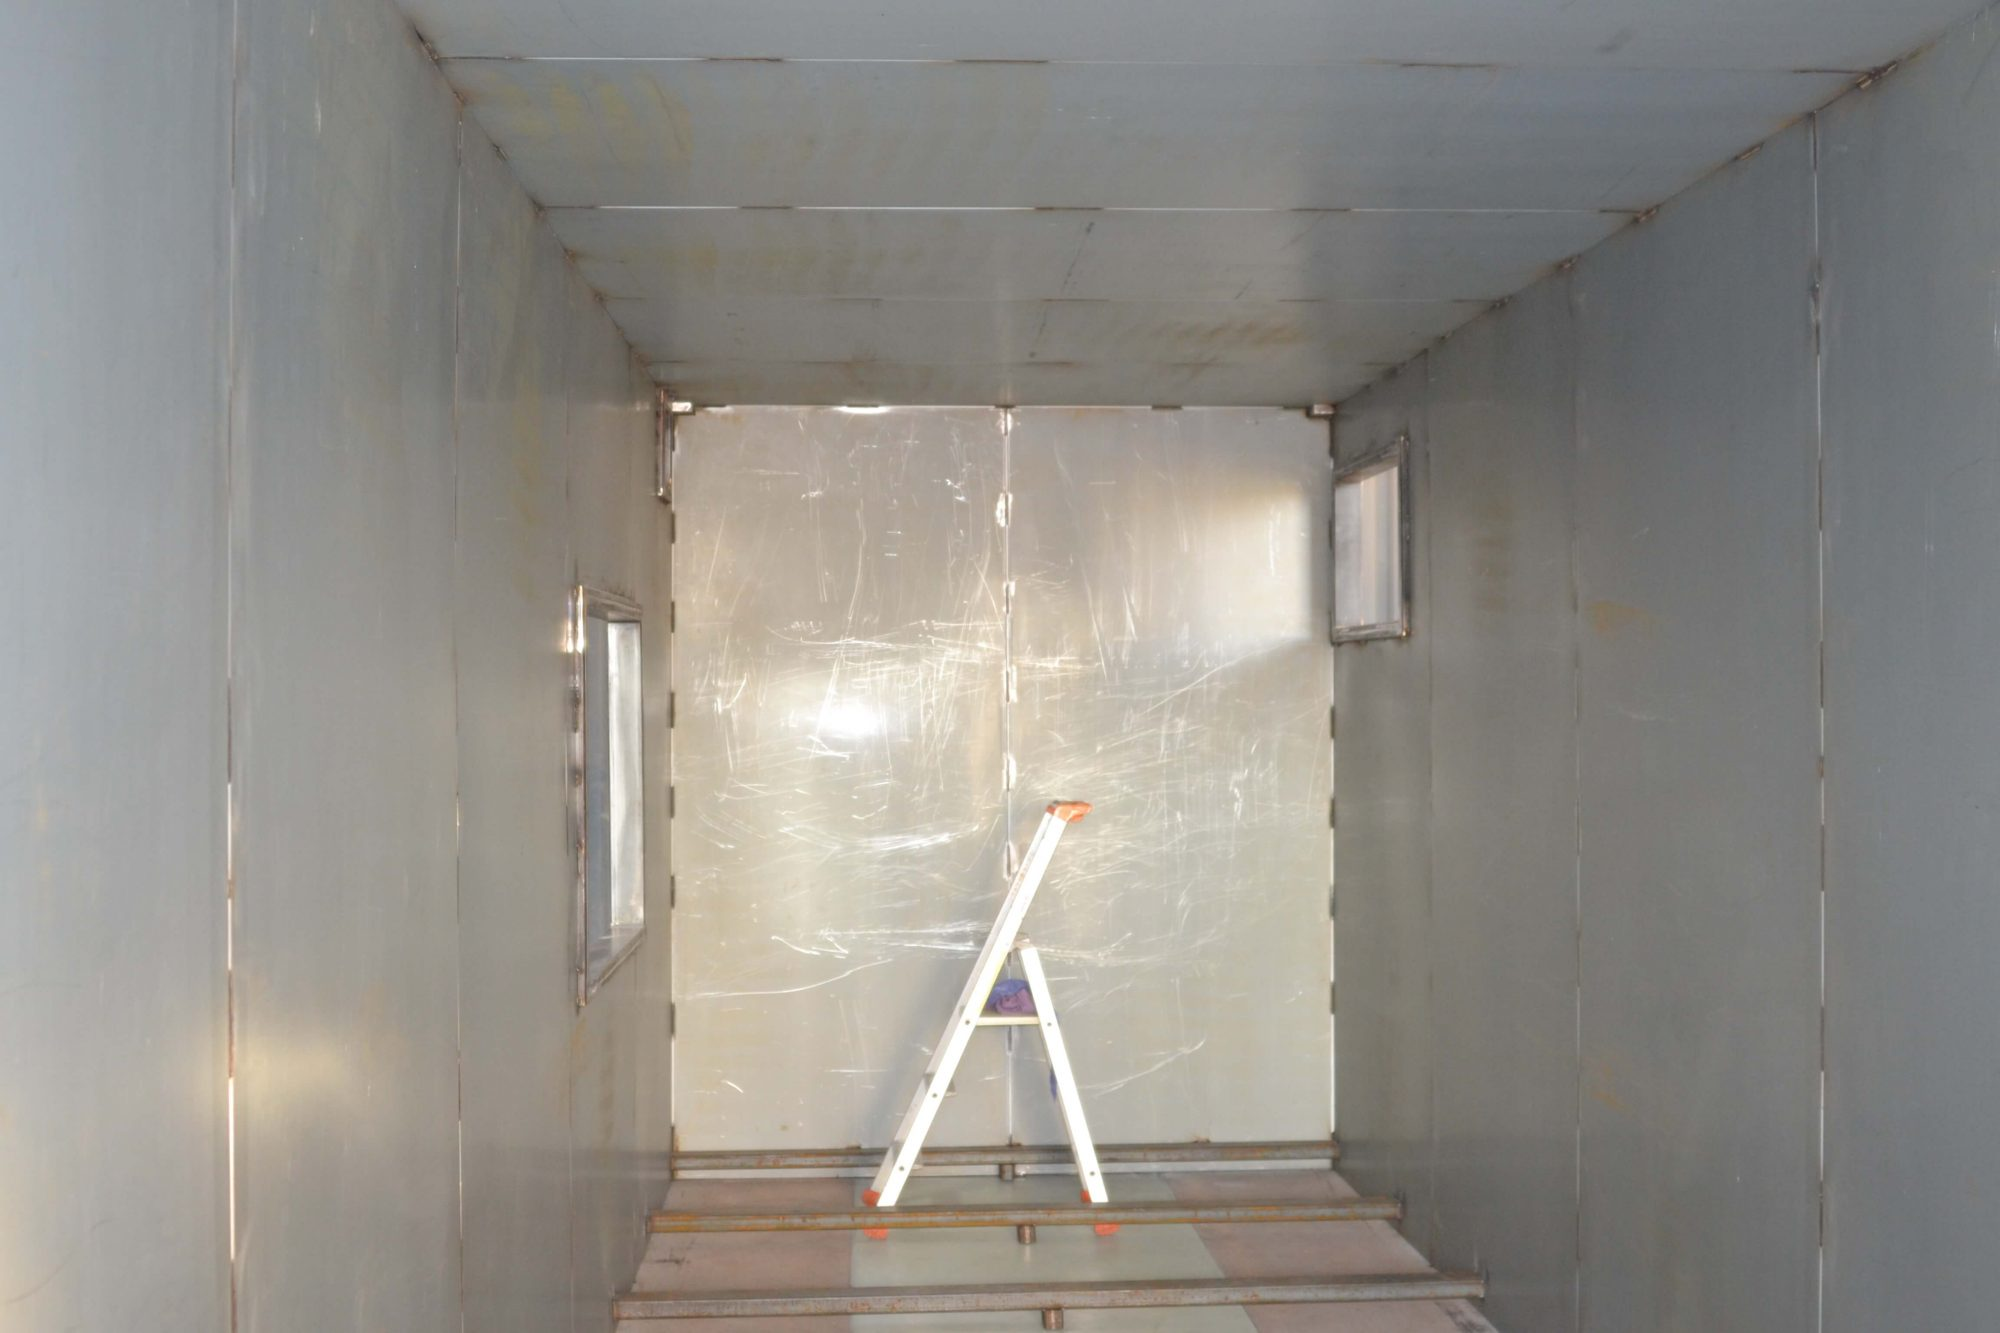 container-blindage-armee